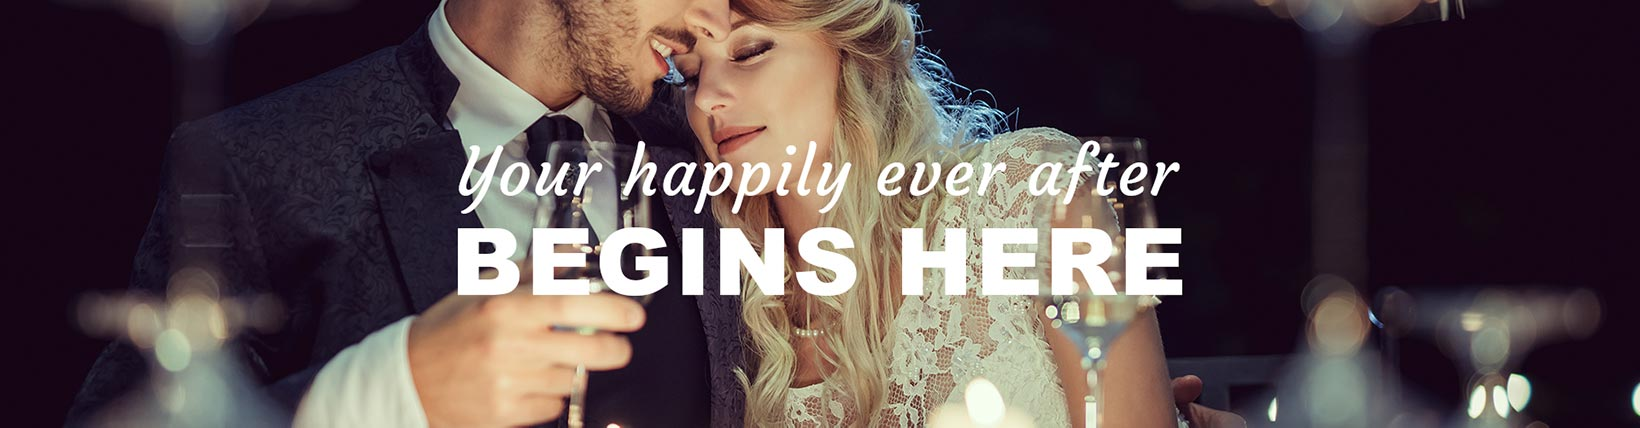 Your happily ever after begins here